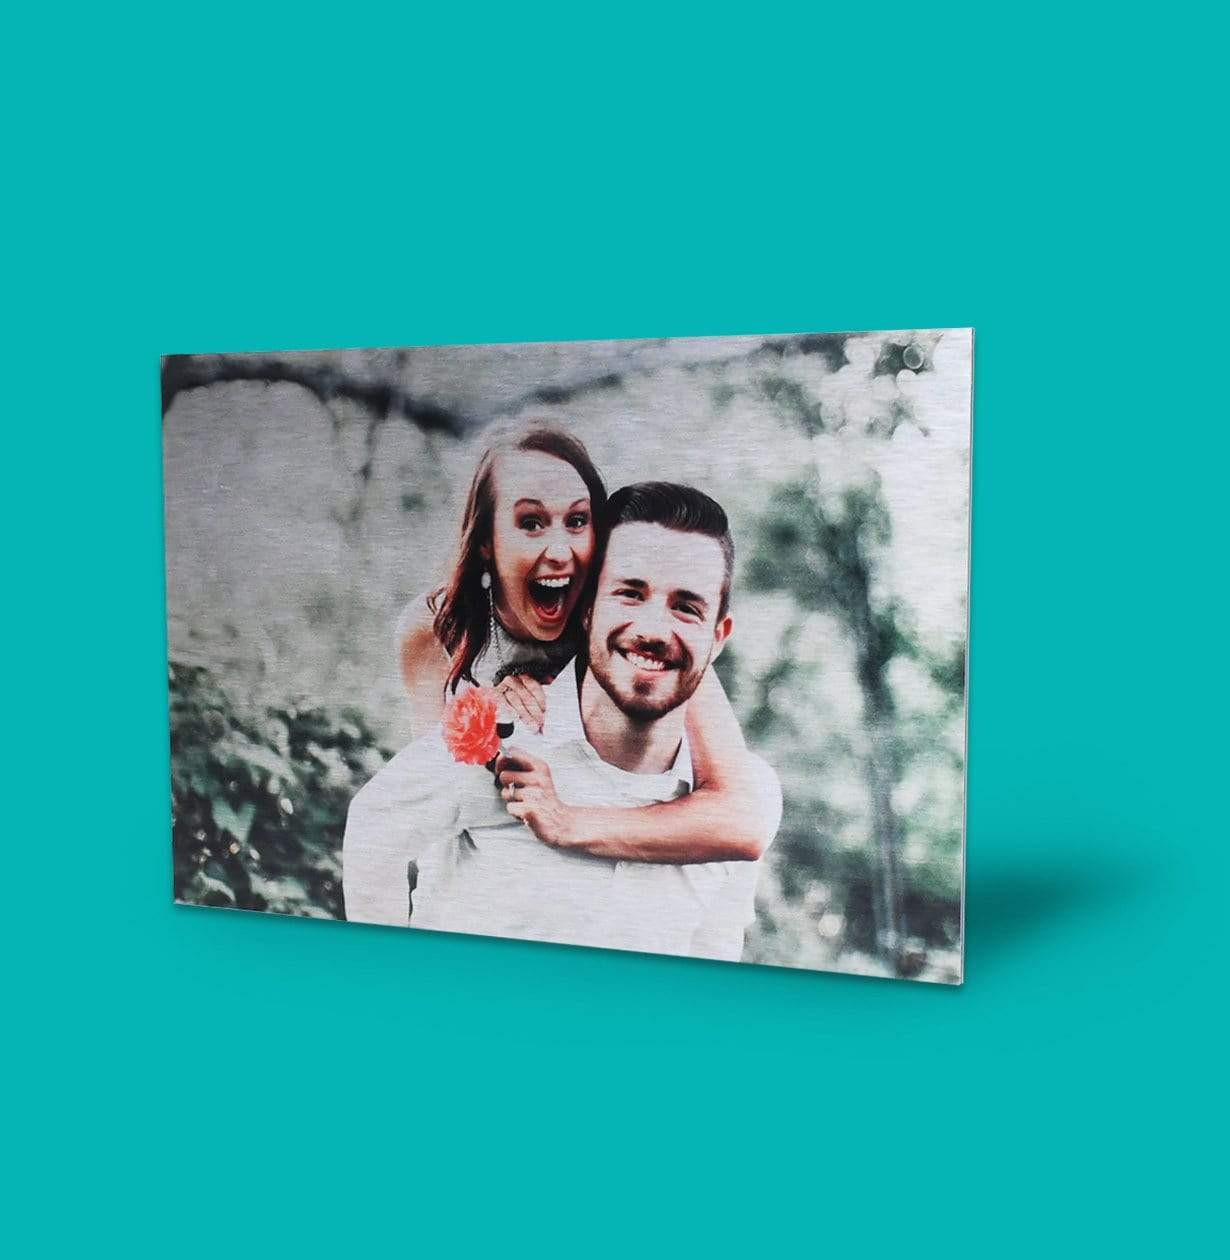 Silver Metallic Prints Custom Photos On Metal With Posterjack Canada